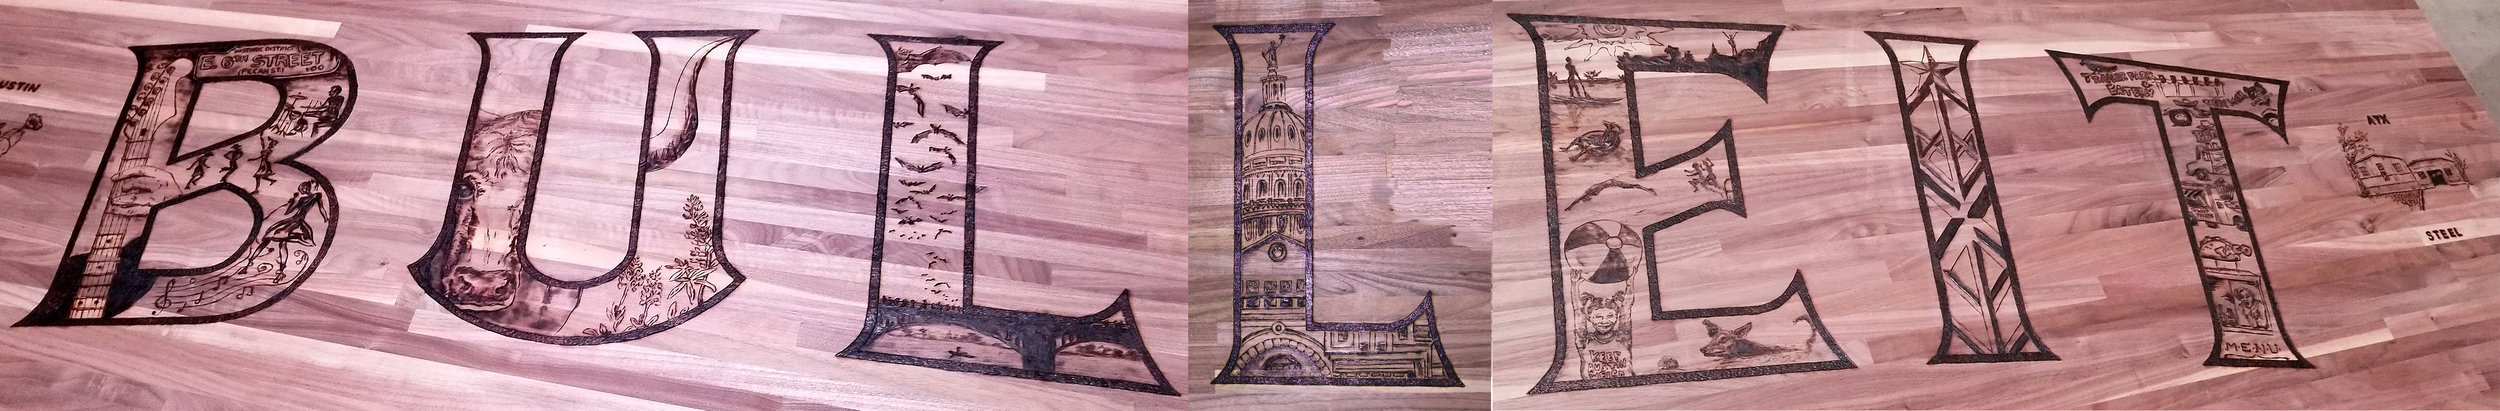 Proud to have illustrated some of our favorite aspects of this great city, pyrographic drawing live, during the event, on this 8 foot table top. The table will tour with the party and end up on display at the Kentucky distillery.